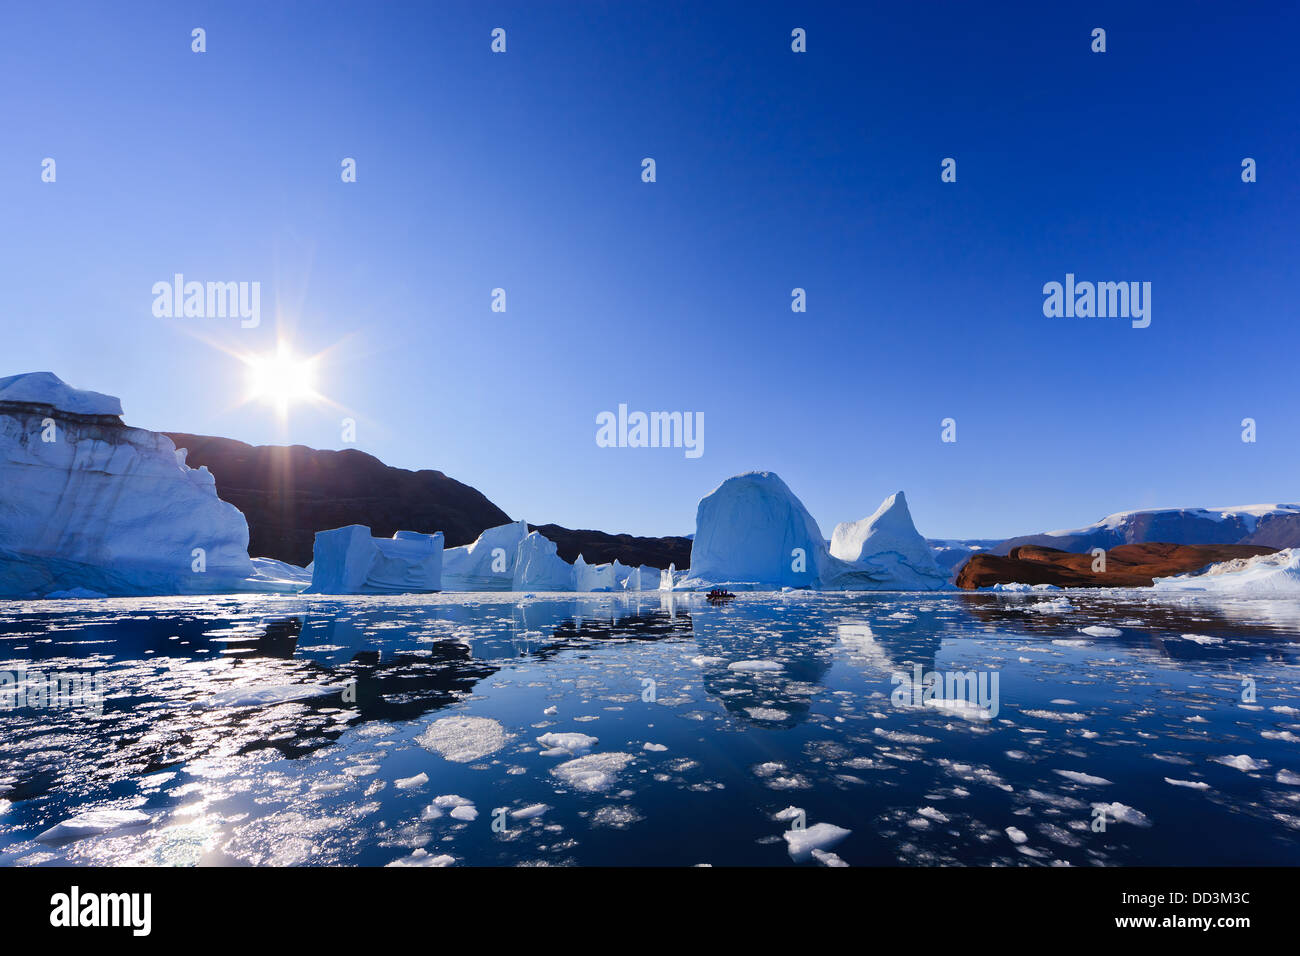 Cruising between the icebergs at Røde Ø, Scoresby sund, Greenland - Stock Image